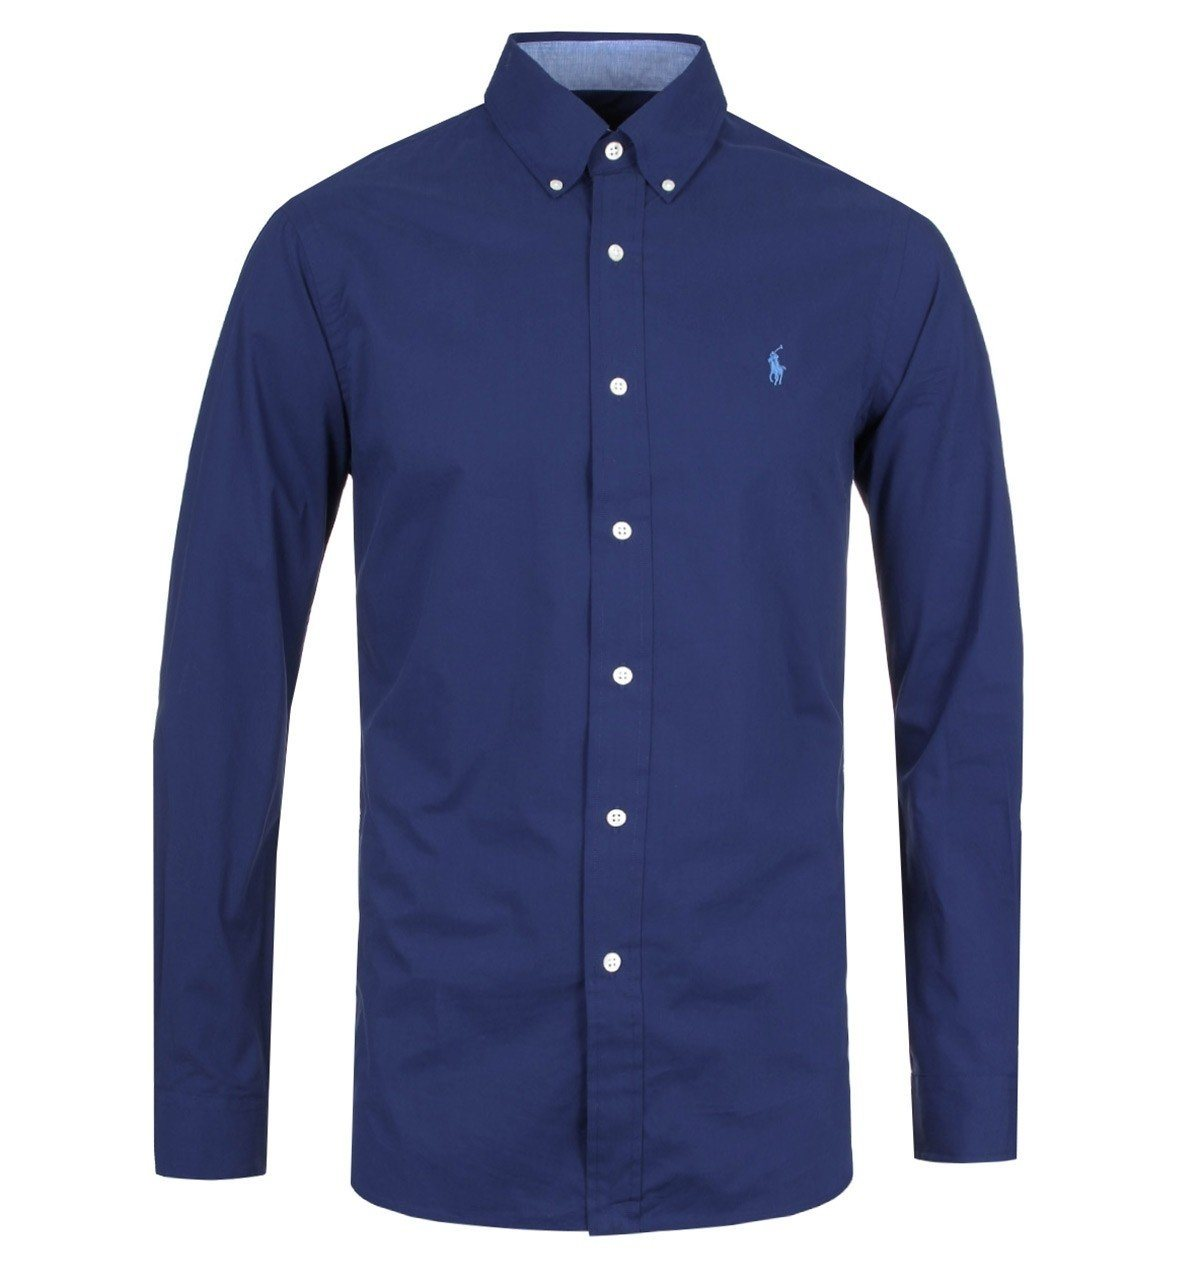 Ralph Lauren Stretch Cotton Poplin Button Down Shirt in Navy